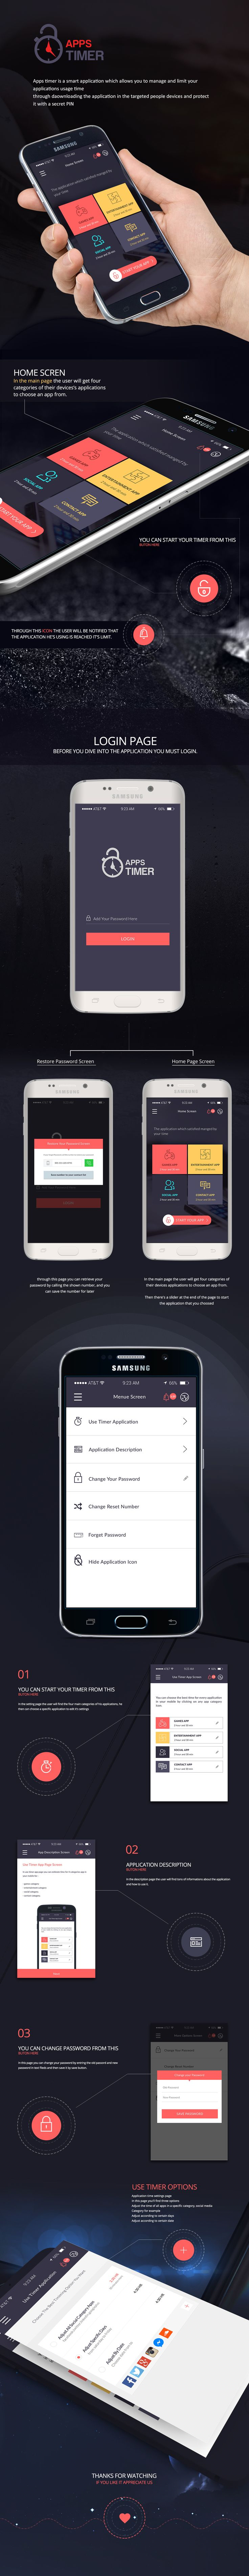 Apps Timer on Behance